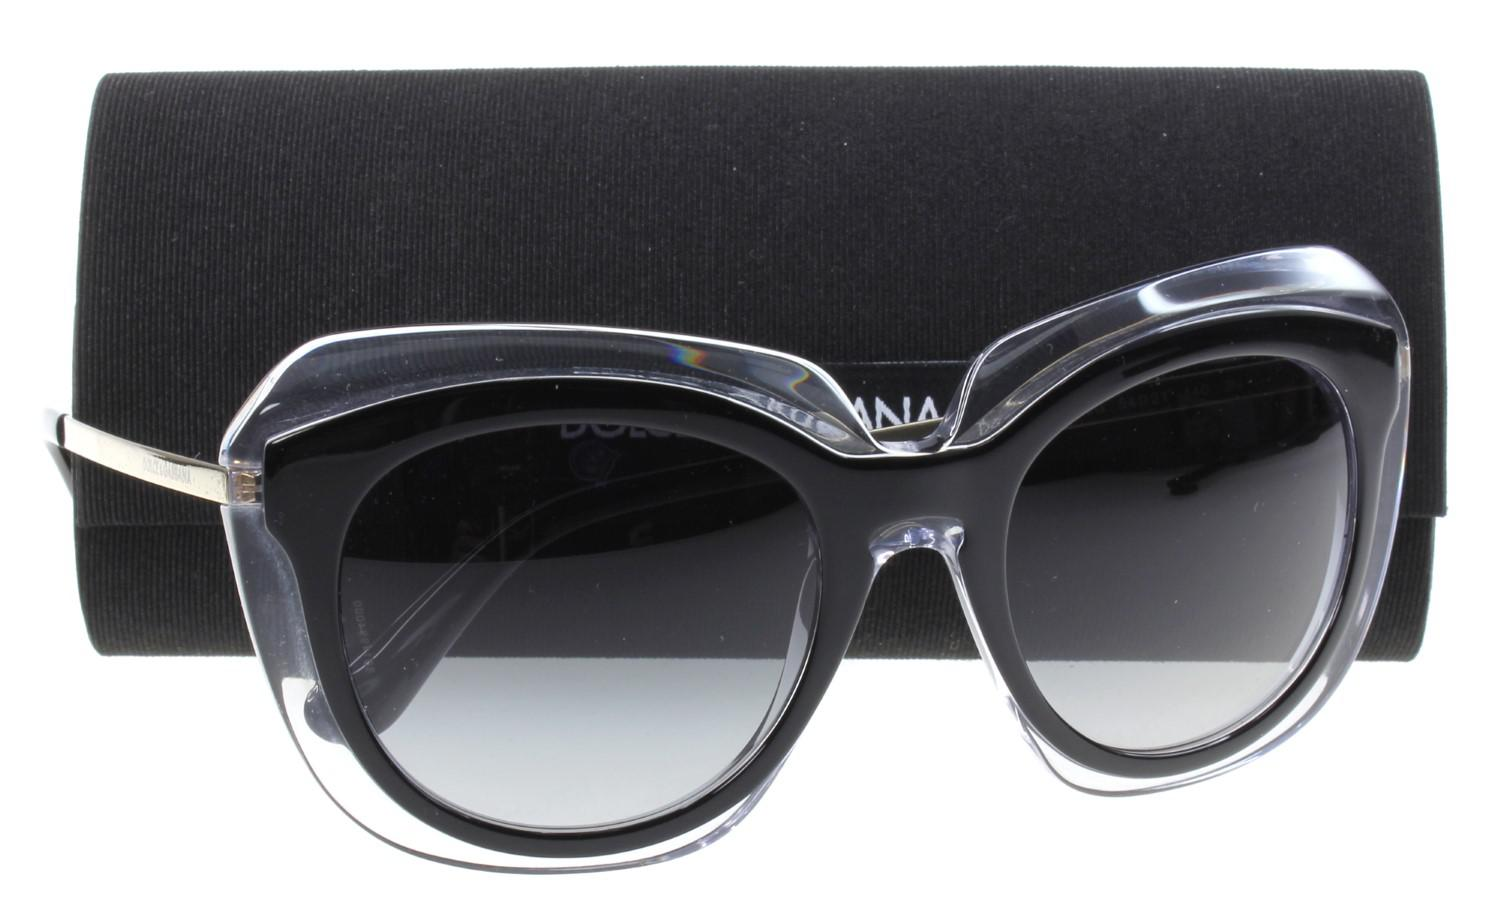 0e17cd4bcf Lyst - Dolce & Gabbana D&g 0dg4282 Round Sunglasses in Black